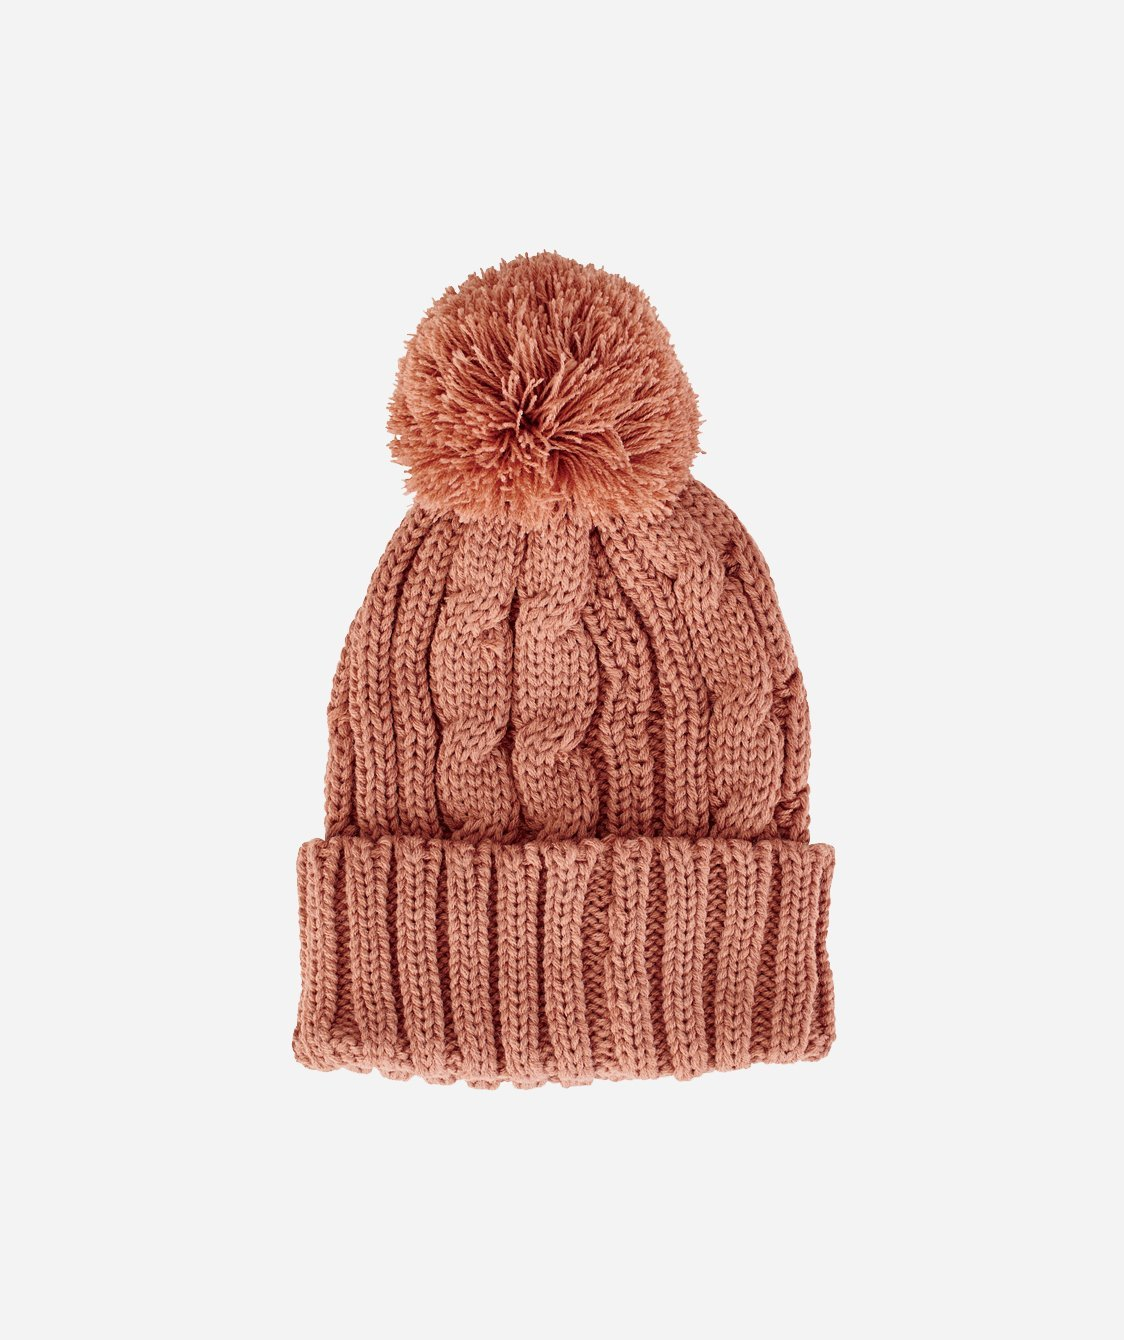 Womens Solid Cable Knit Beanie (KNH3423) - San Diego Hat Company 259357902ac